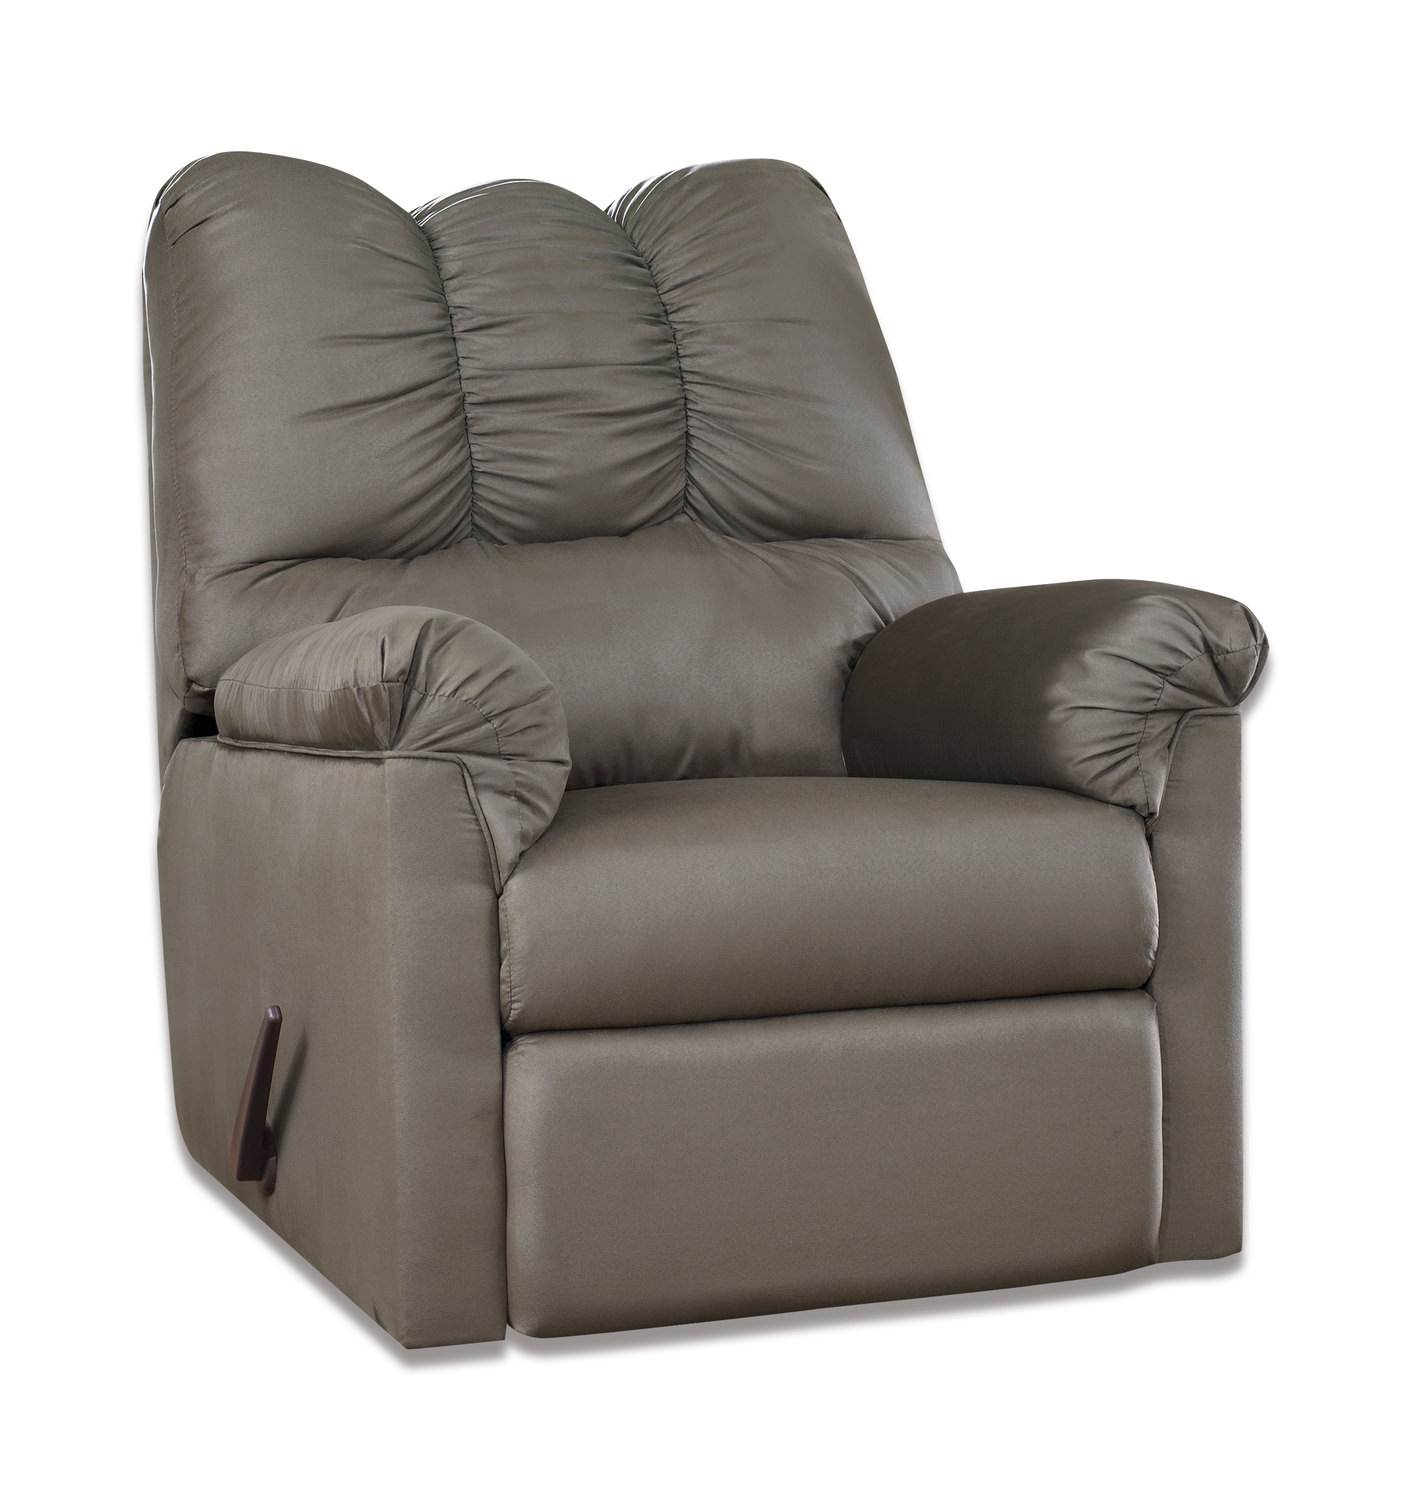 Recliners – Leather, Rocker & Swivel – Hom Furniture Within Swivel Tobacco Leather Chairs (View 18 of 20)